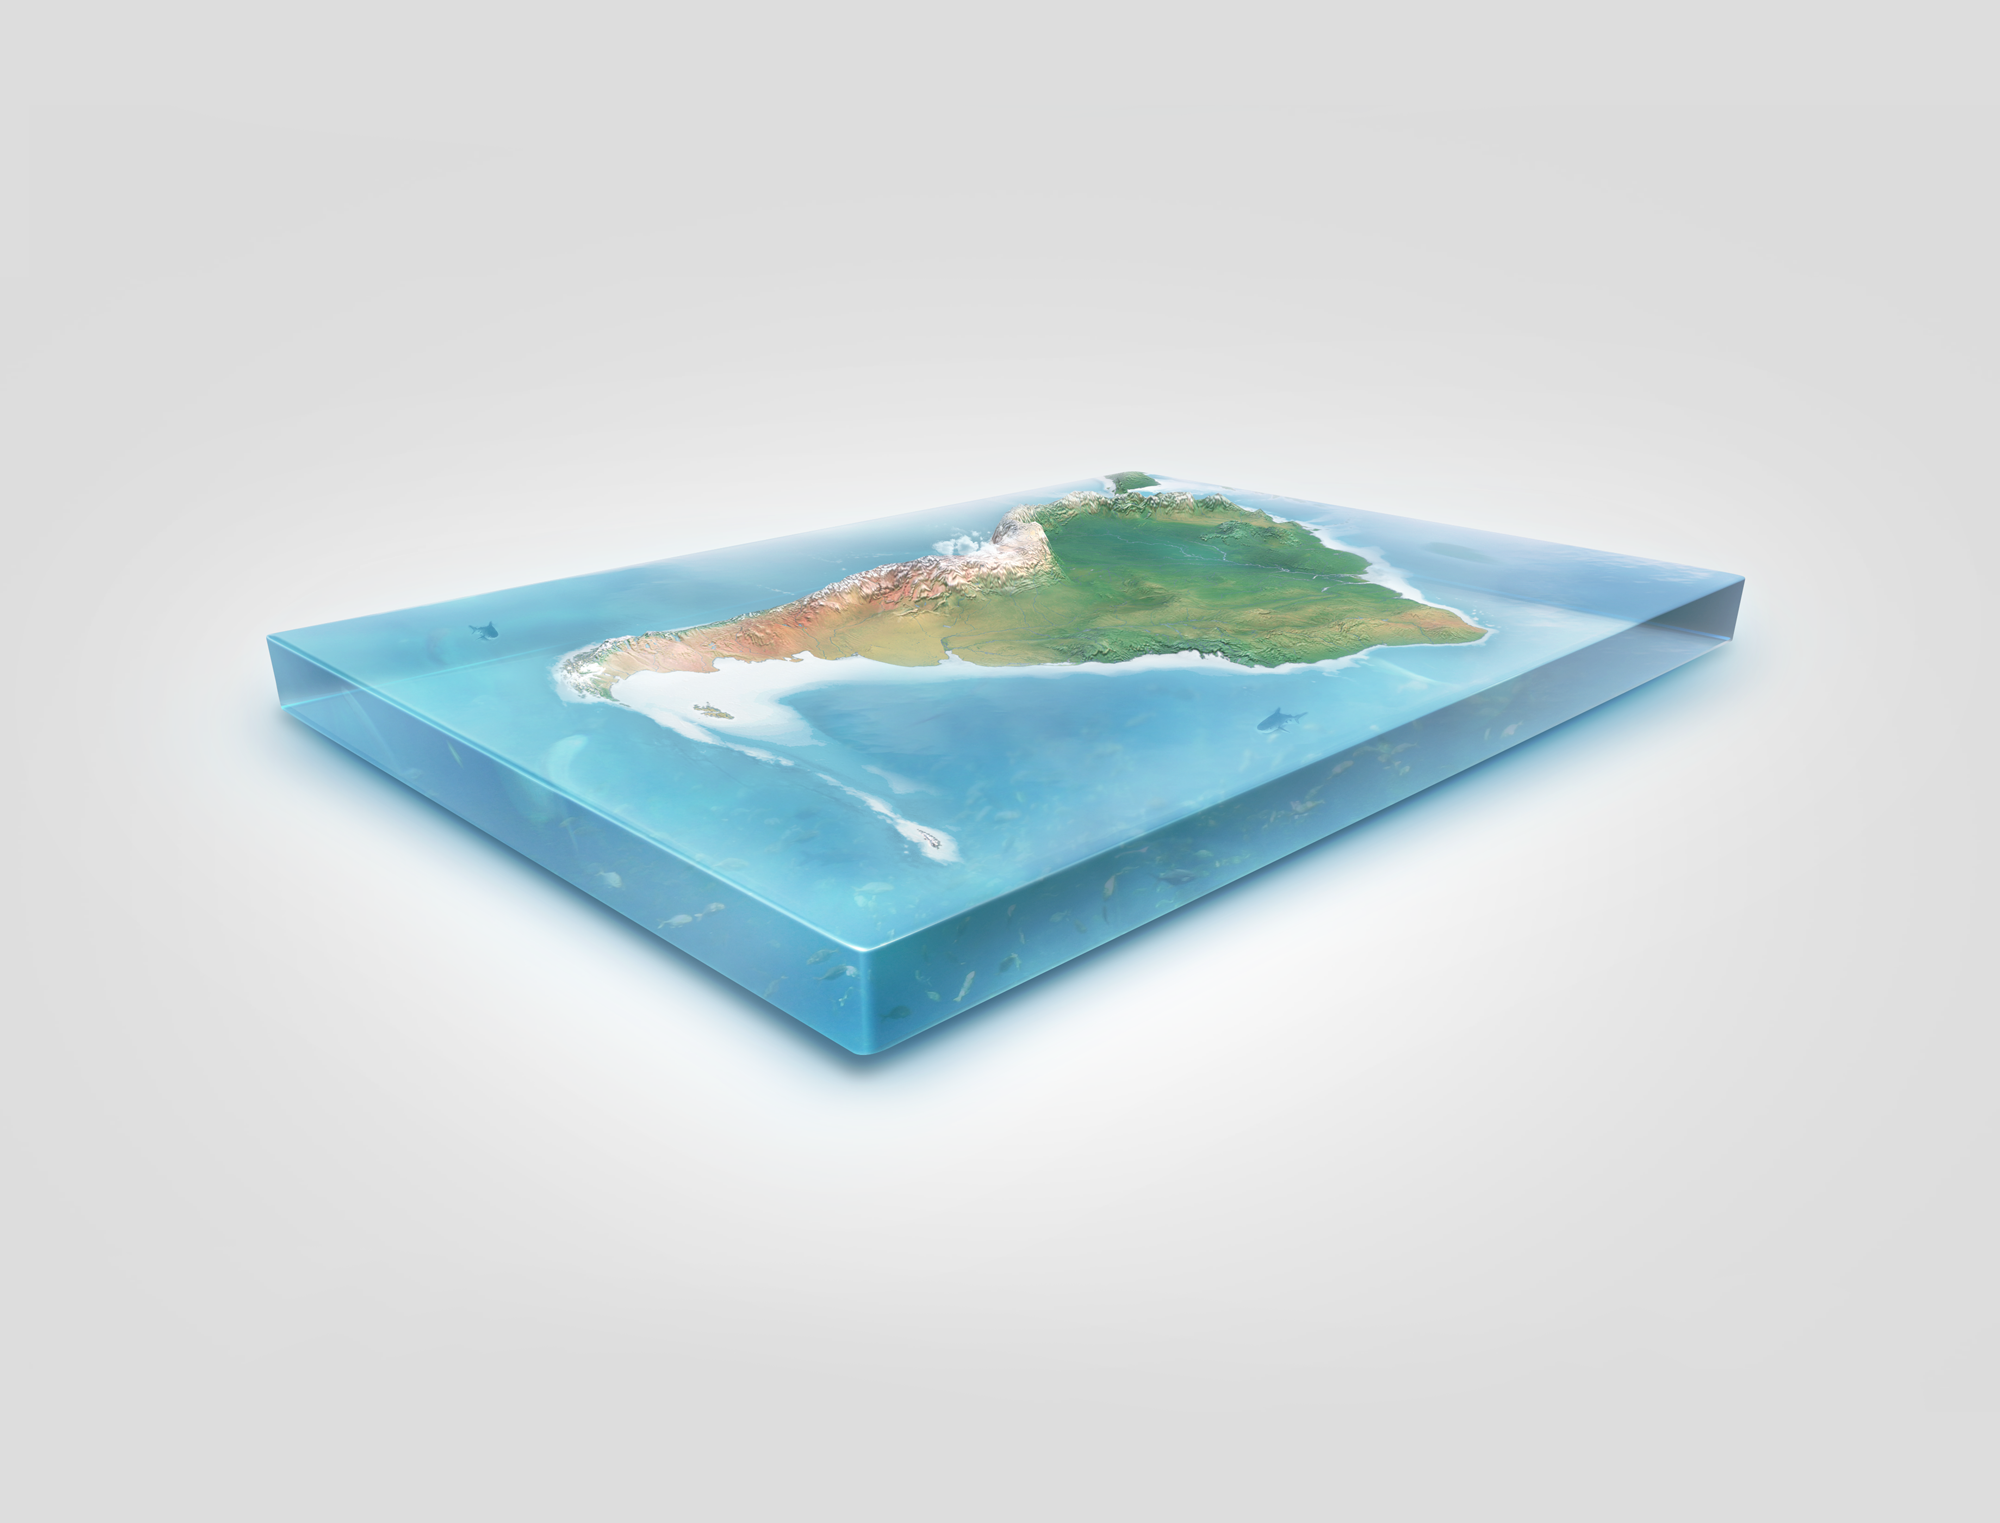 Big2_earth-illustrations-3d-globe-natural-render-planet